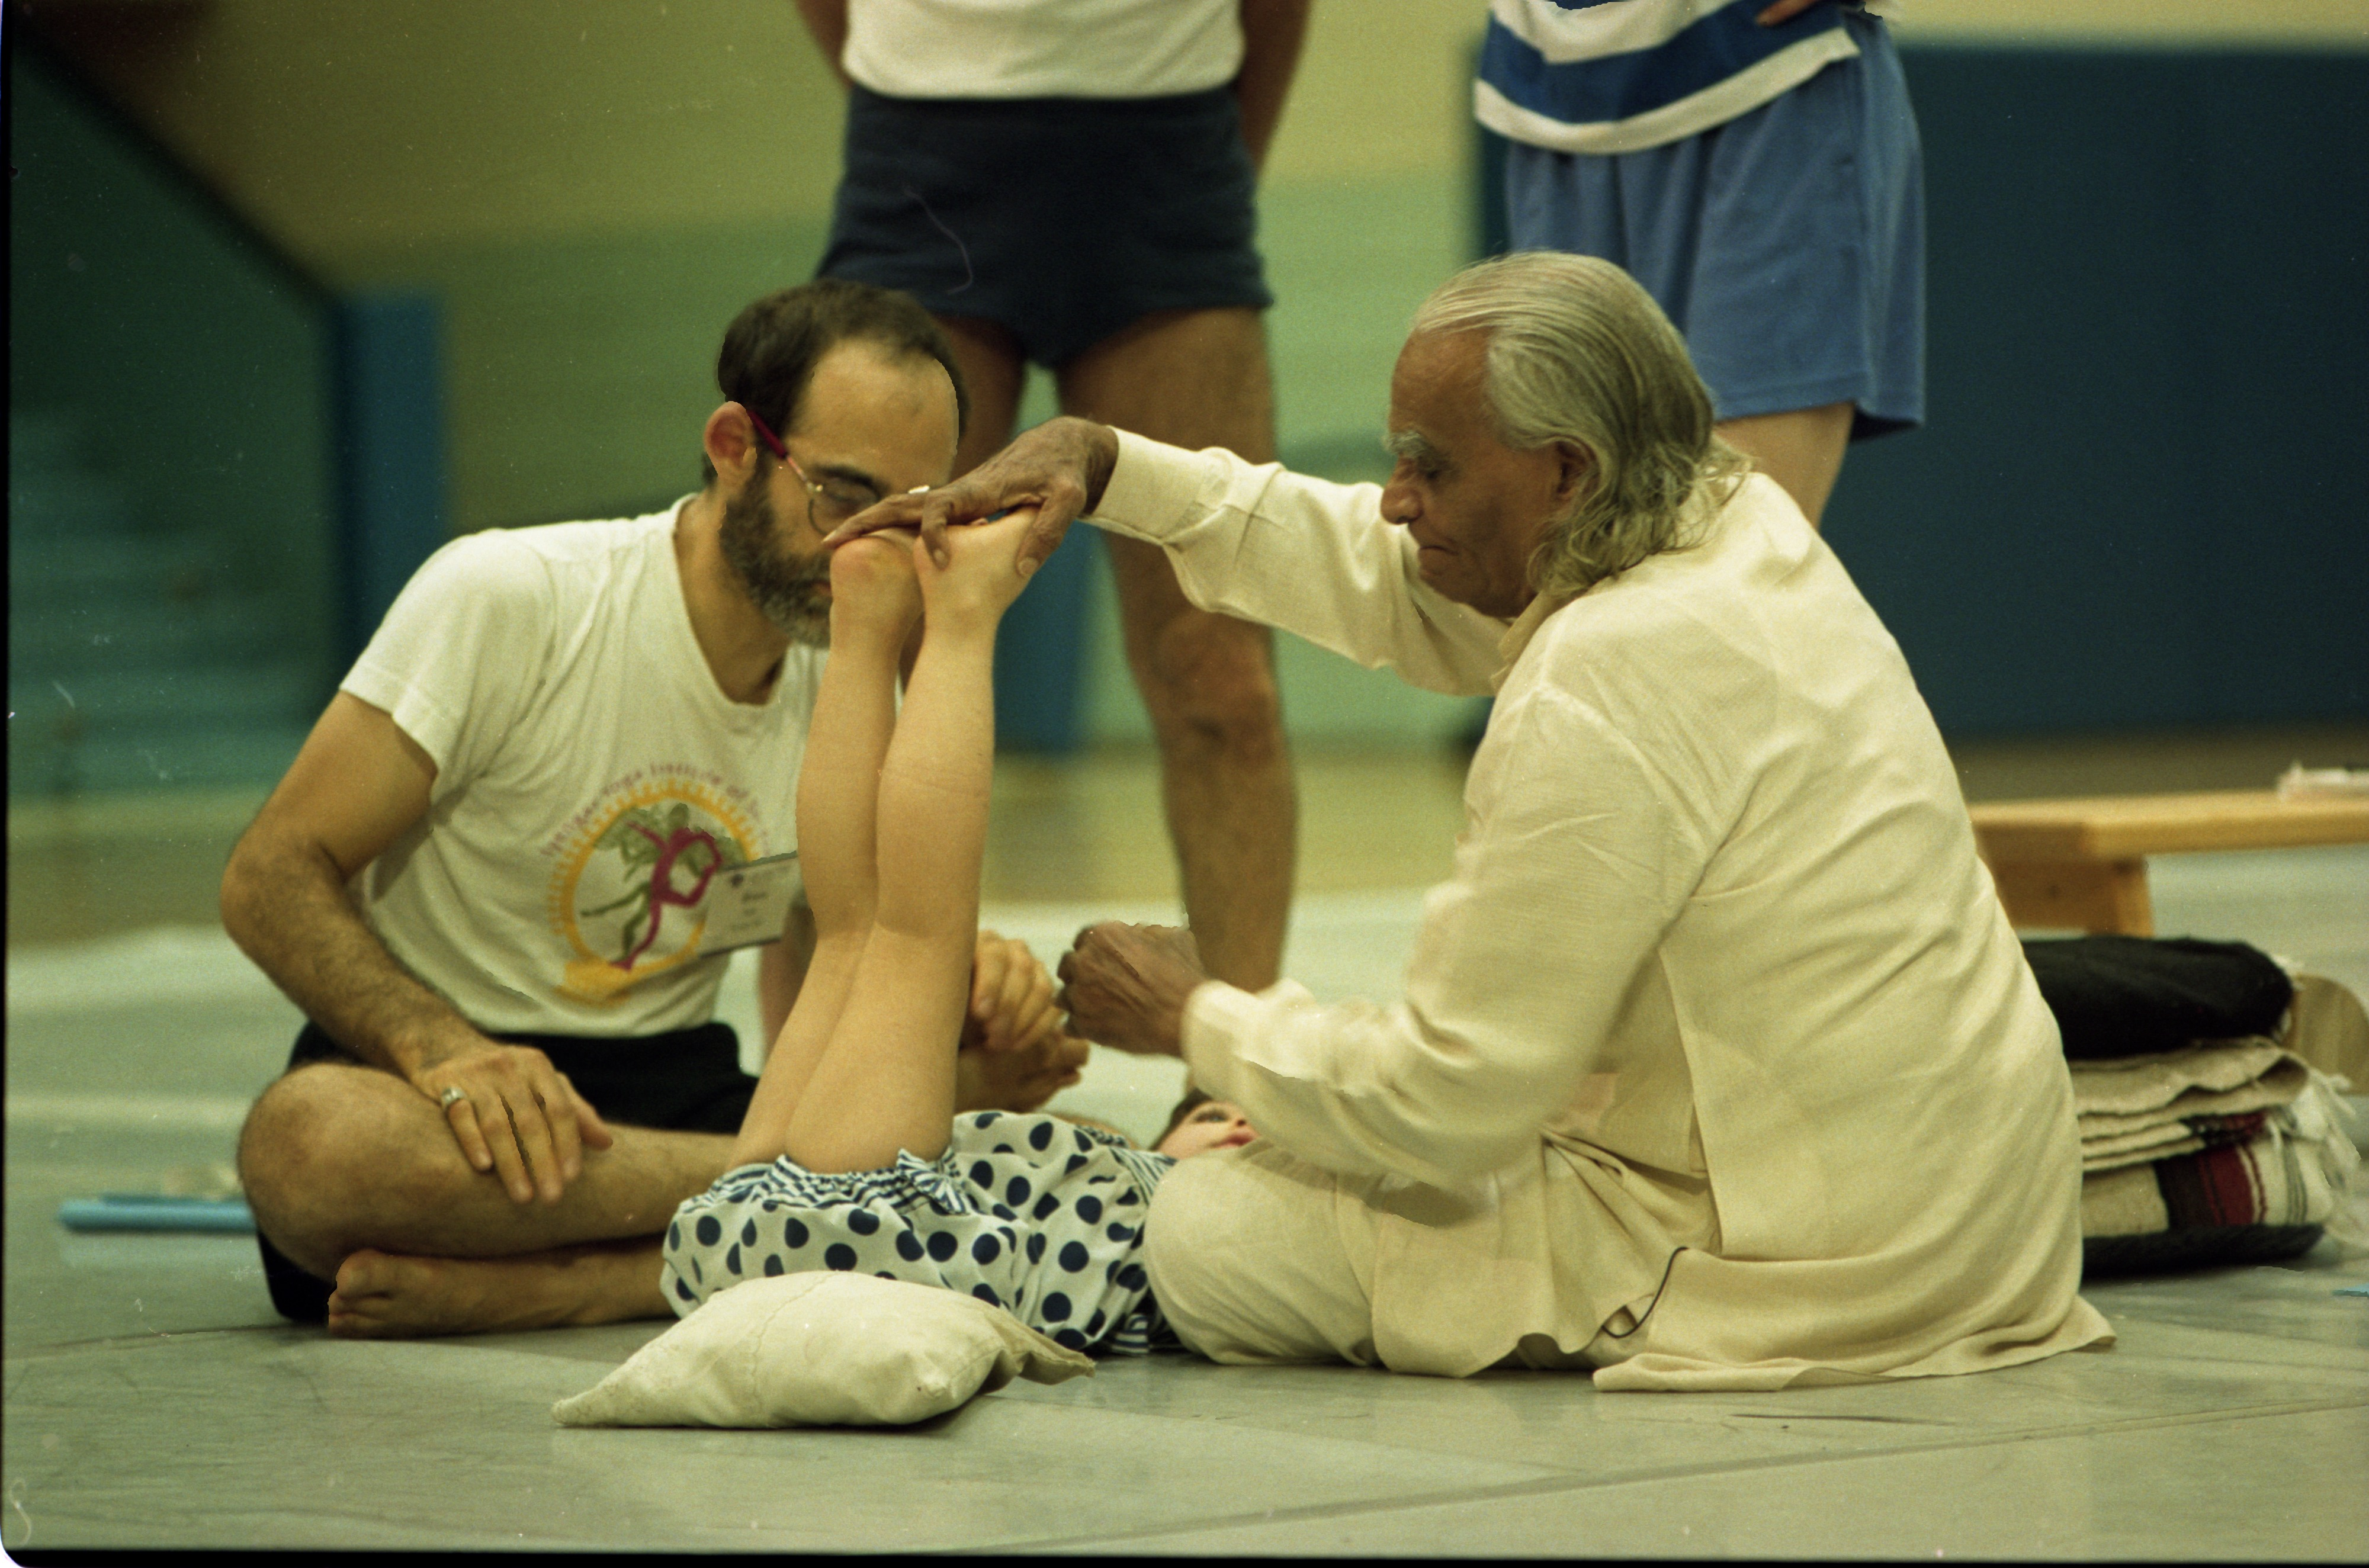 B.K.S. Iyengar Helps Child In Yoga Class, August 12, 1993 image